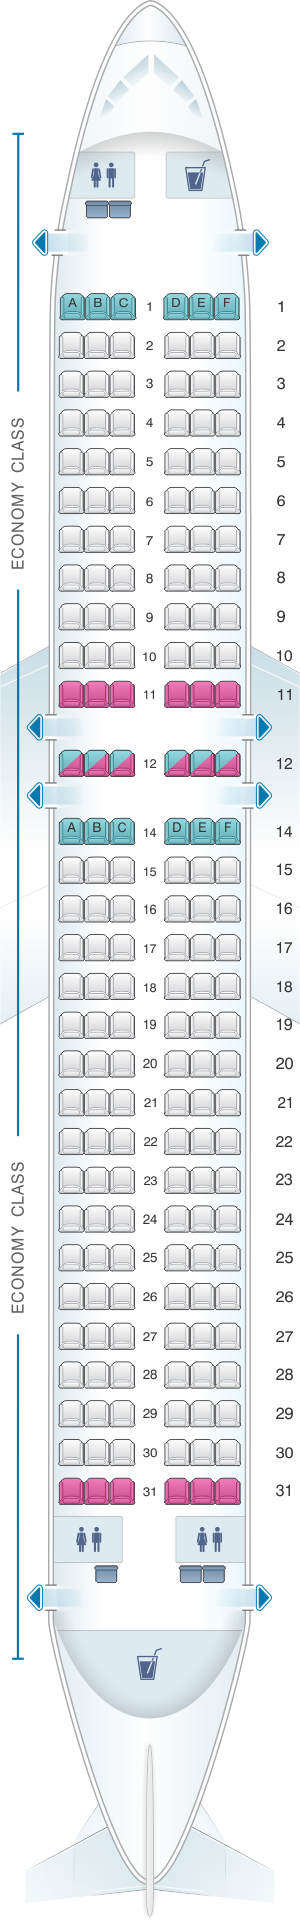 Seat map for Kingfisher Airlines Airbus A320 200 180PAX